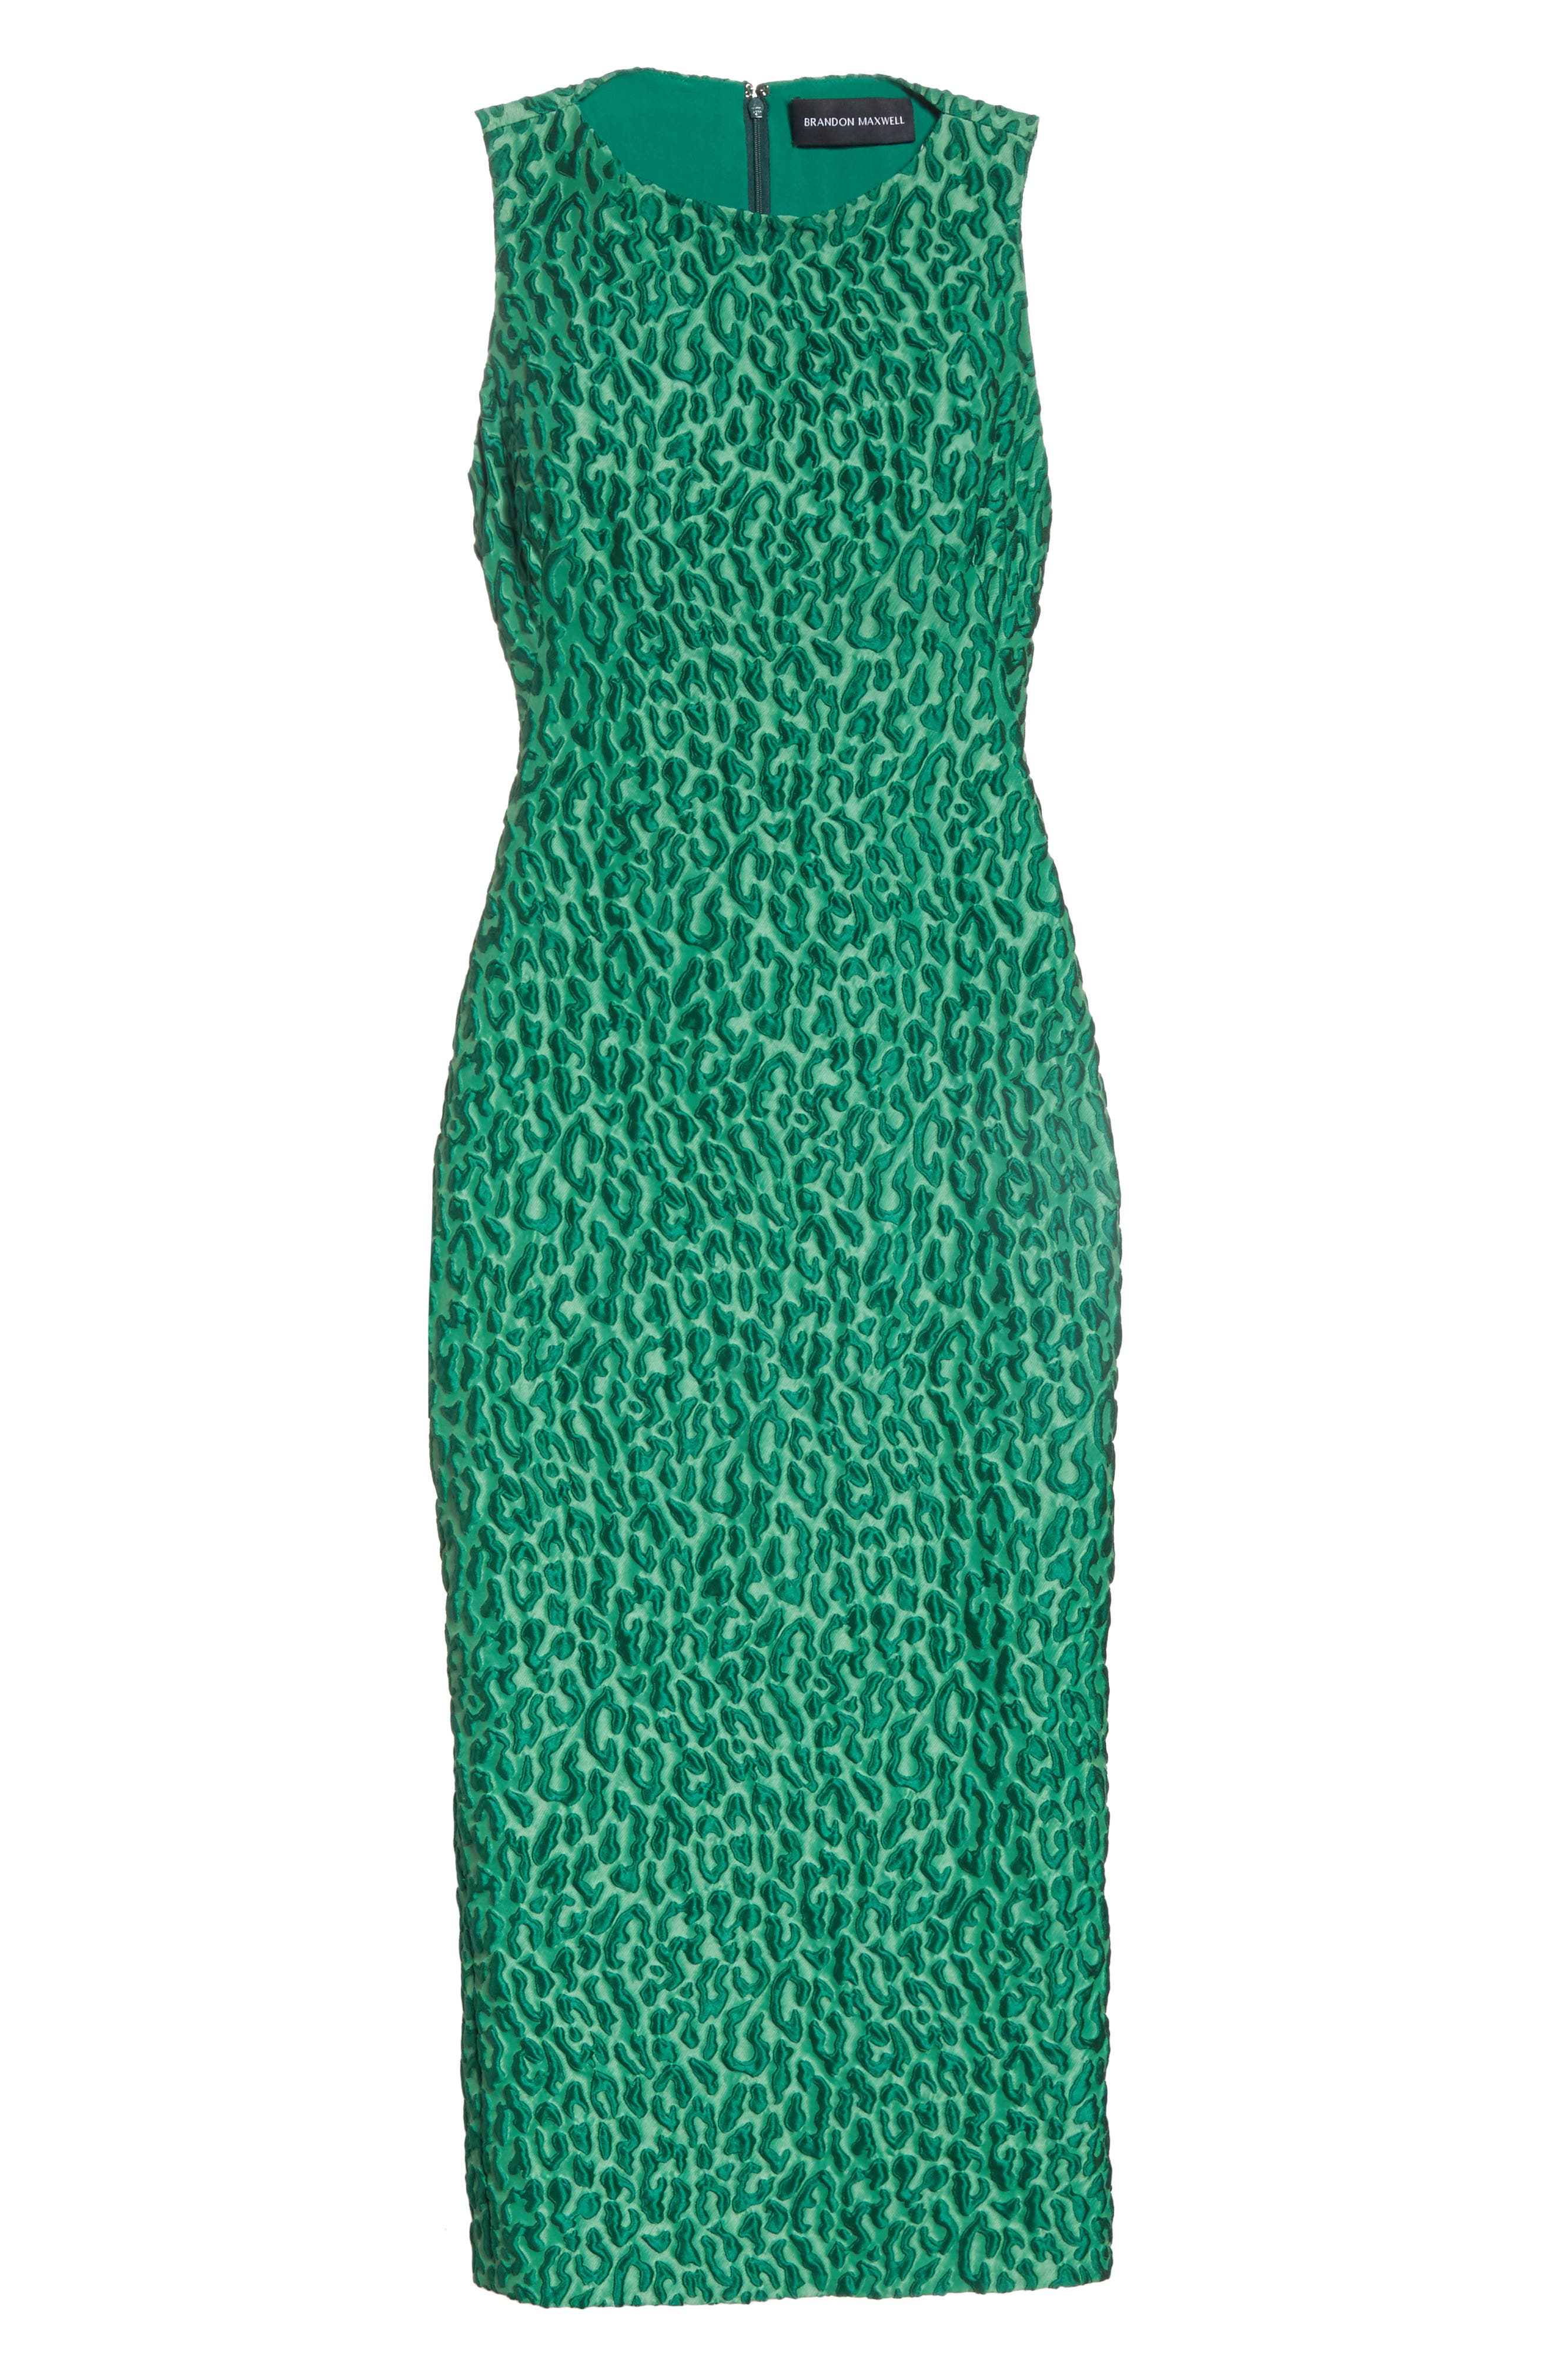 Leopard Jacquard Sheath Dress,                             Alternate thumbnail 6, color,                             Green